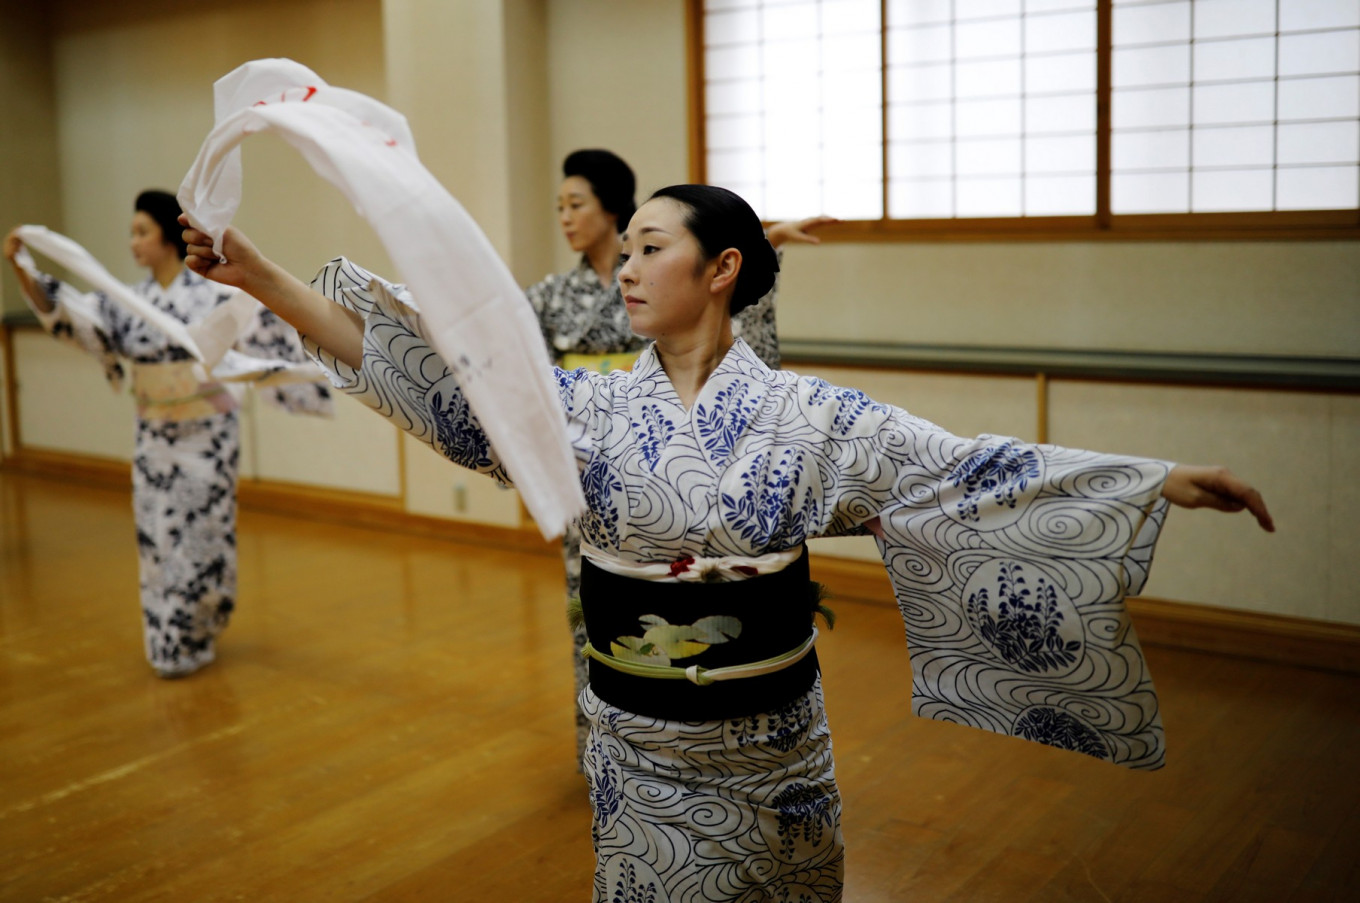 Koiku, Maki, Ikuko and Mayu, who are geisha, perform a dance routine for Reuters, before they work at a party being hosted by customers at Asada, a luxury Japanese restaurant, during the coronavirus disease (COVID-19) outbreak in Tokyo, Japan, June 23, 2020. Reuters/Kim Kyung-Hoon